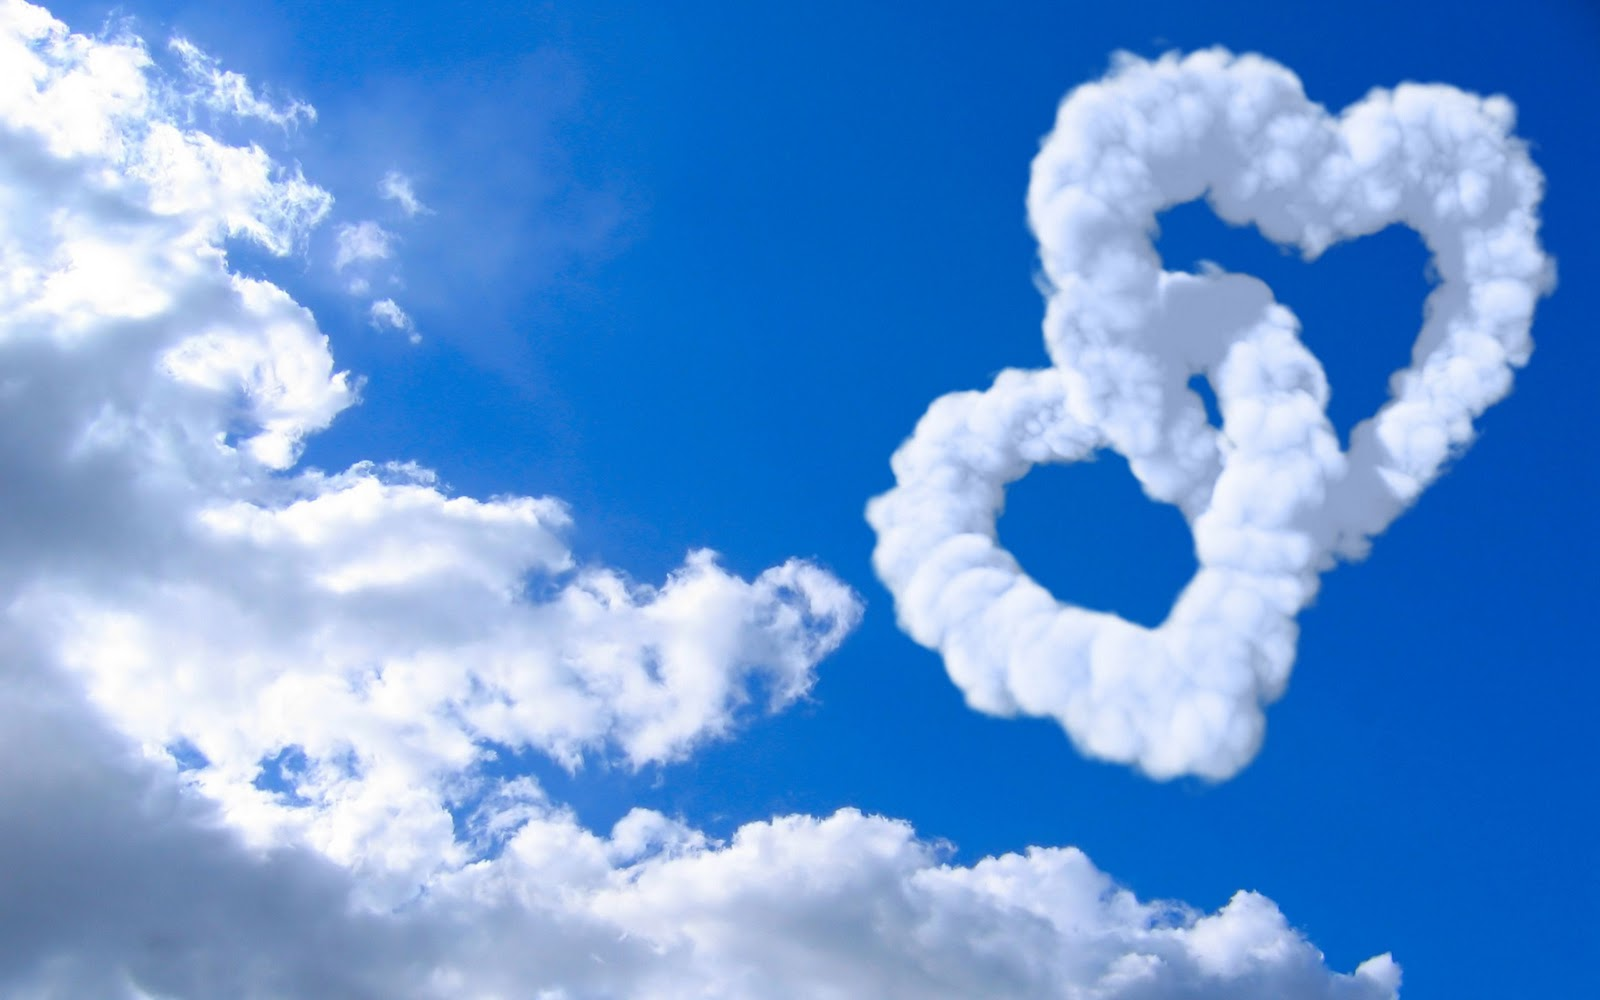 http://2.bp.blogspot.com/-XL8ks3tSBts/TygKoZsPJ2I/AAAAAAAAC8k/oySSJd9rKoU/s1600/love_hearts_clouds_in_blue_sky-wide.jpg